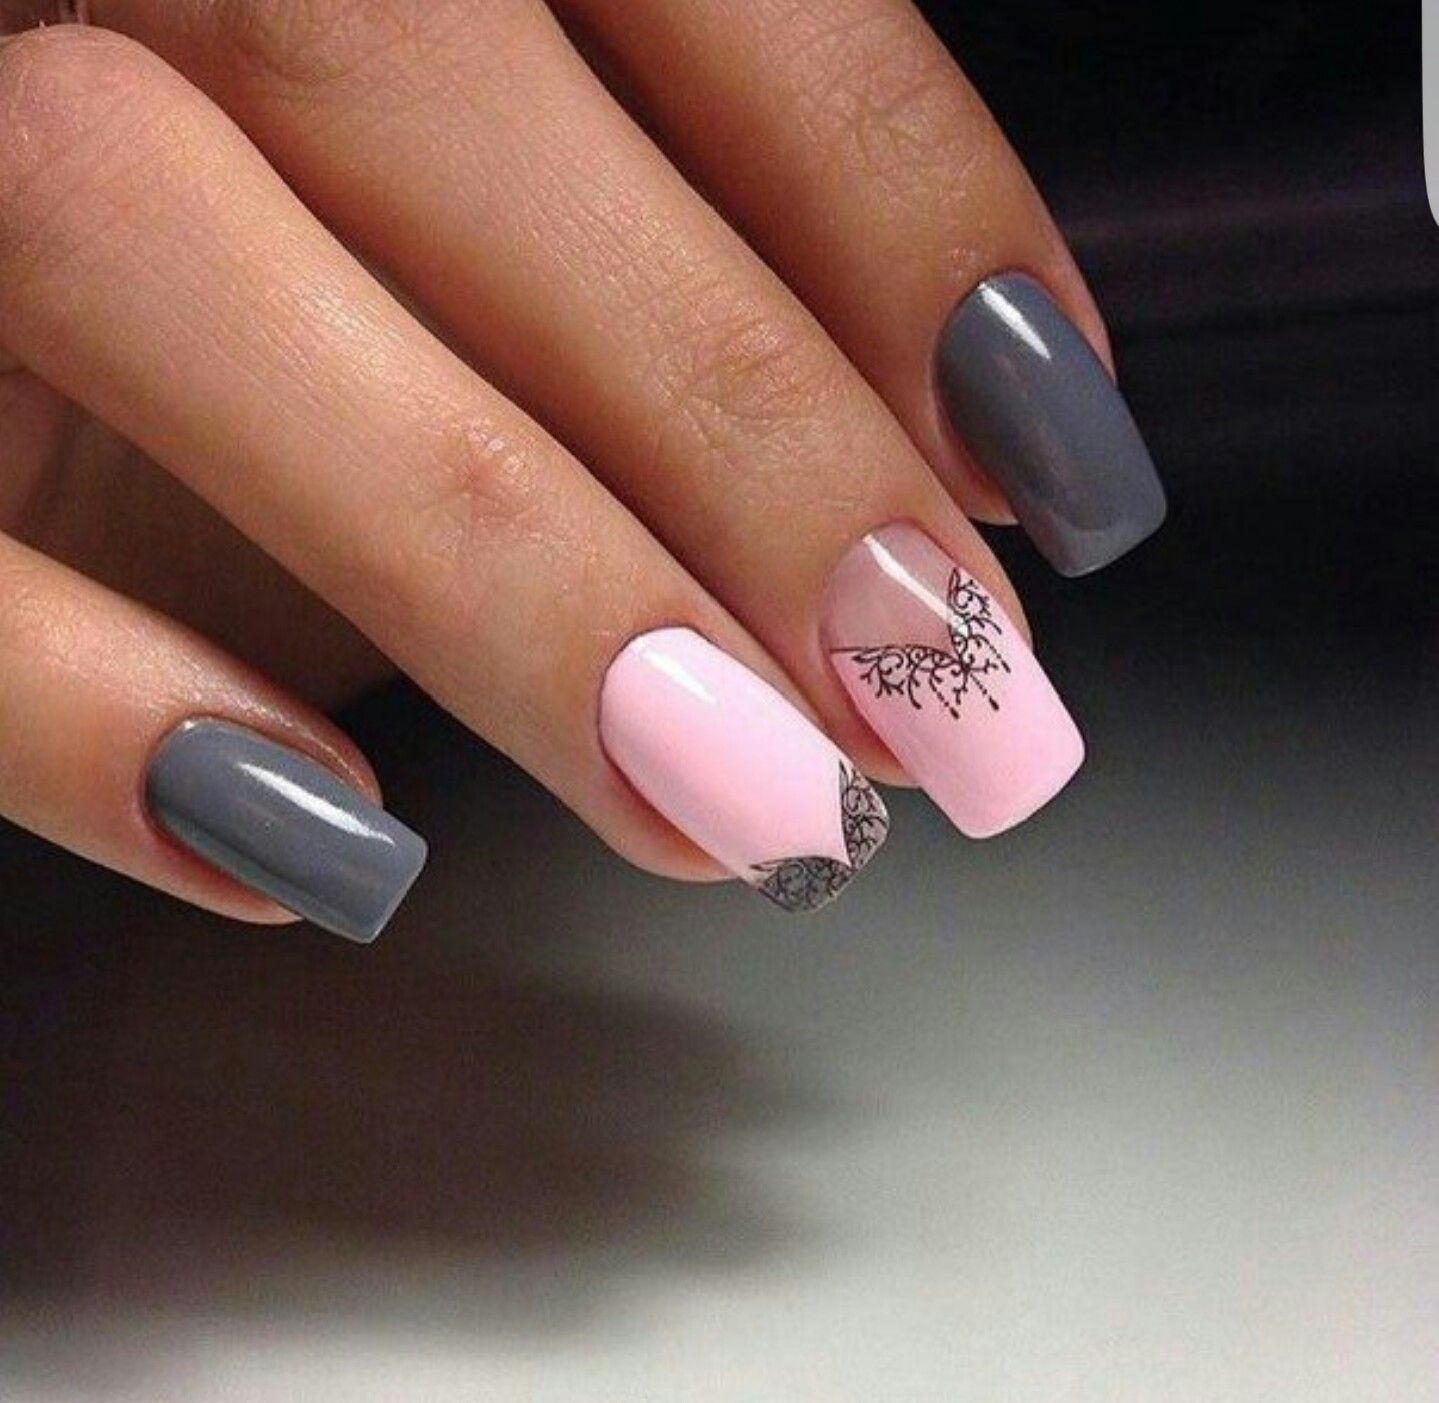 Pin by A B on 1Nail Art Designs Using Scotch Tape | Pinterest ...